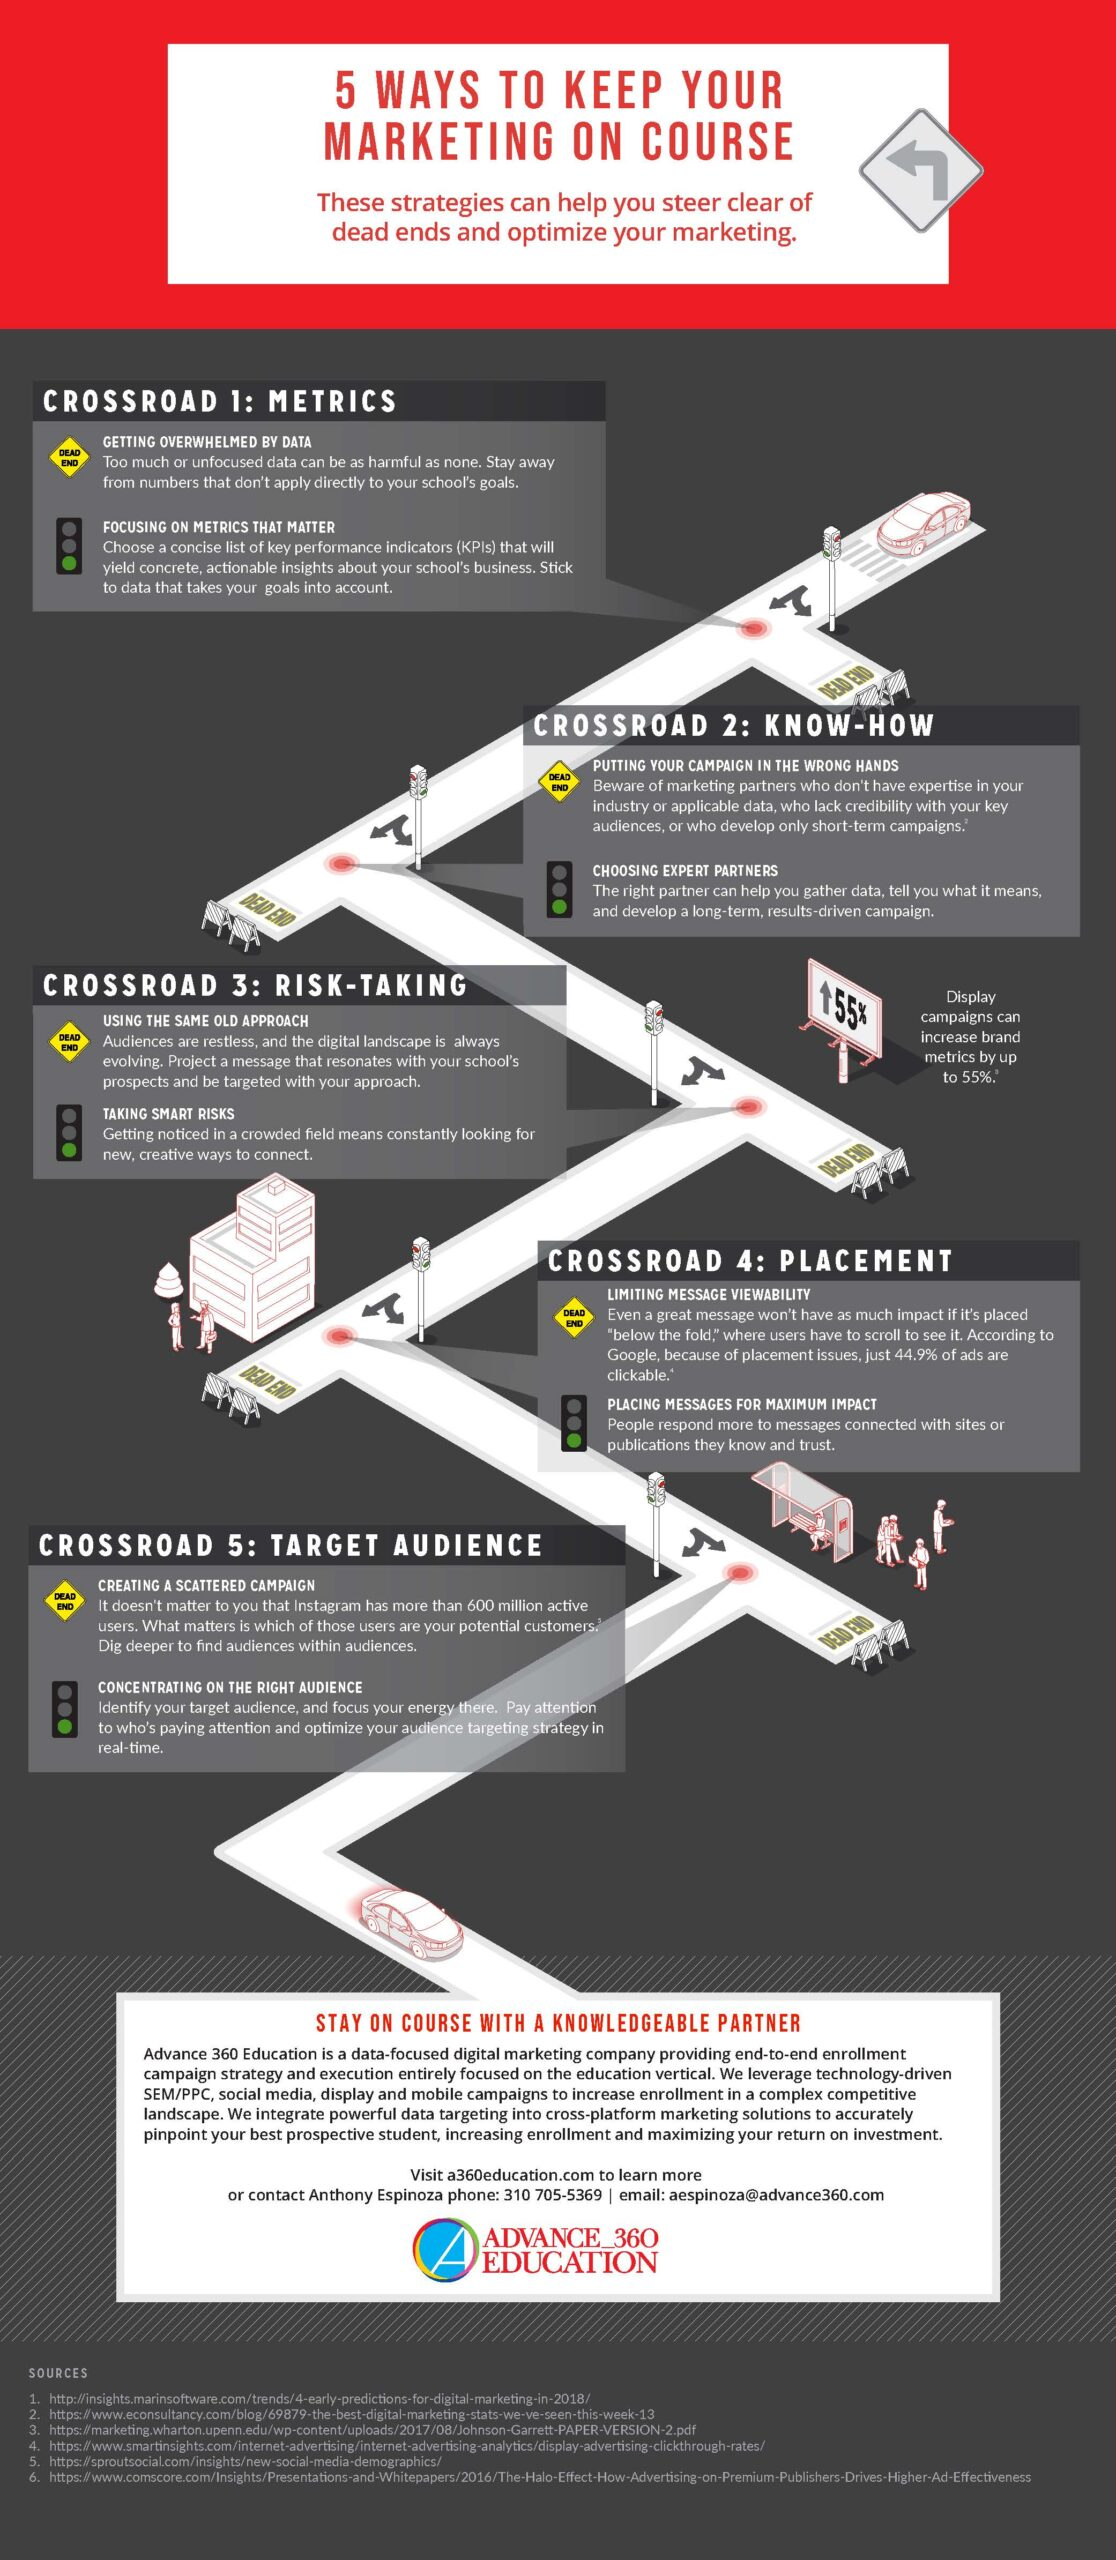 A360-5CommonMistakes_Infogrfx-scaled TIPS: 5 ways to keep your digital marketing on course